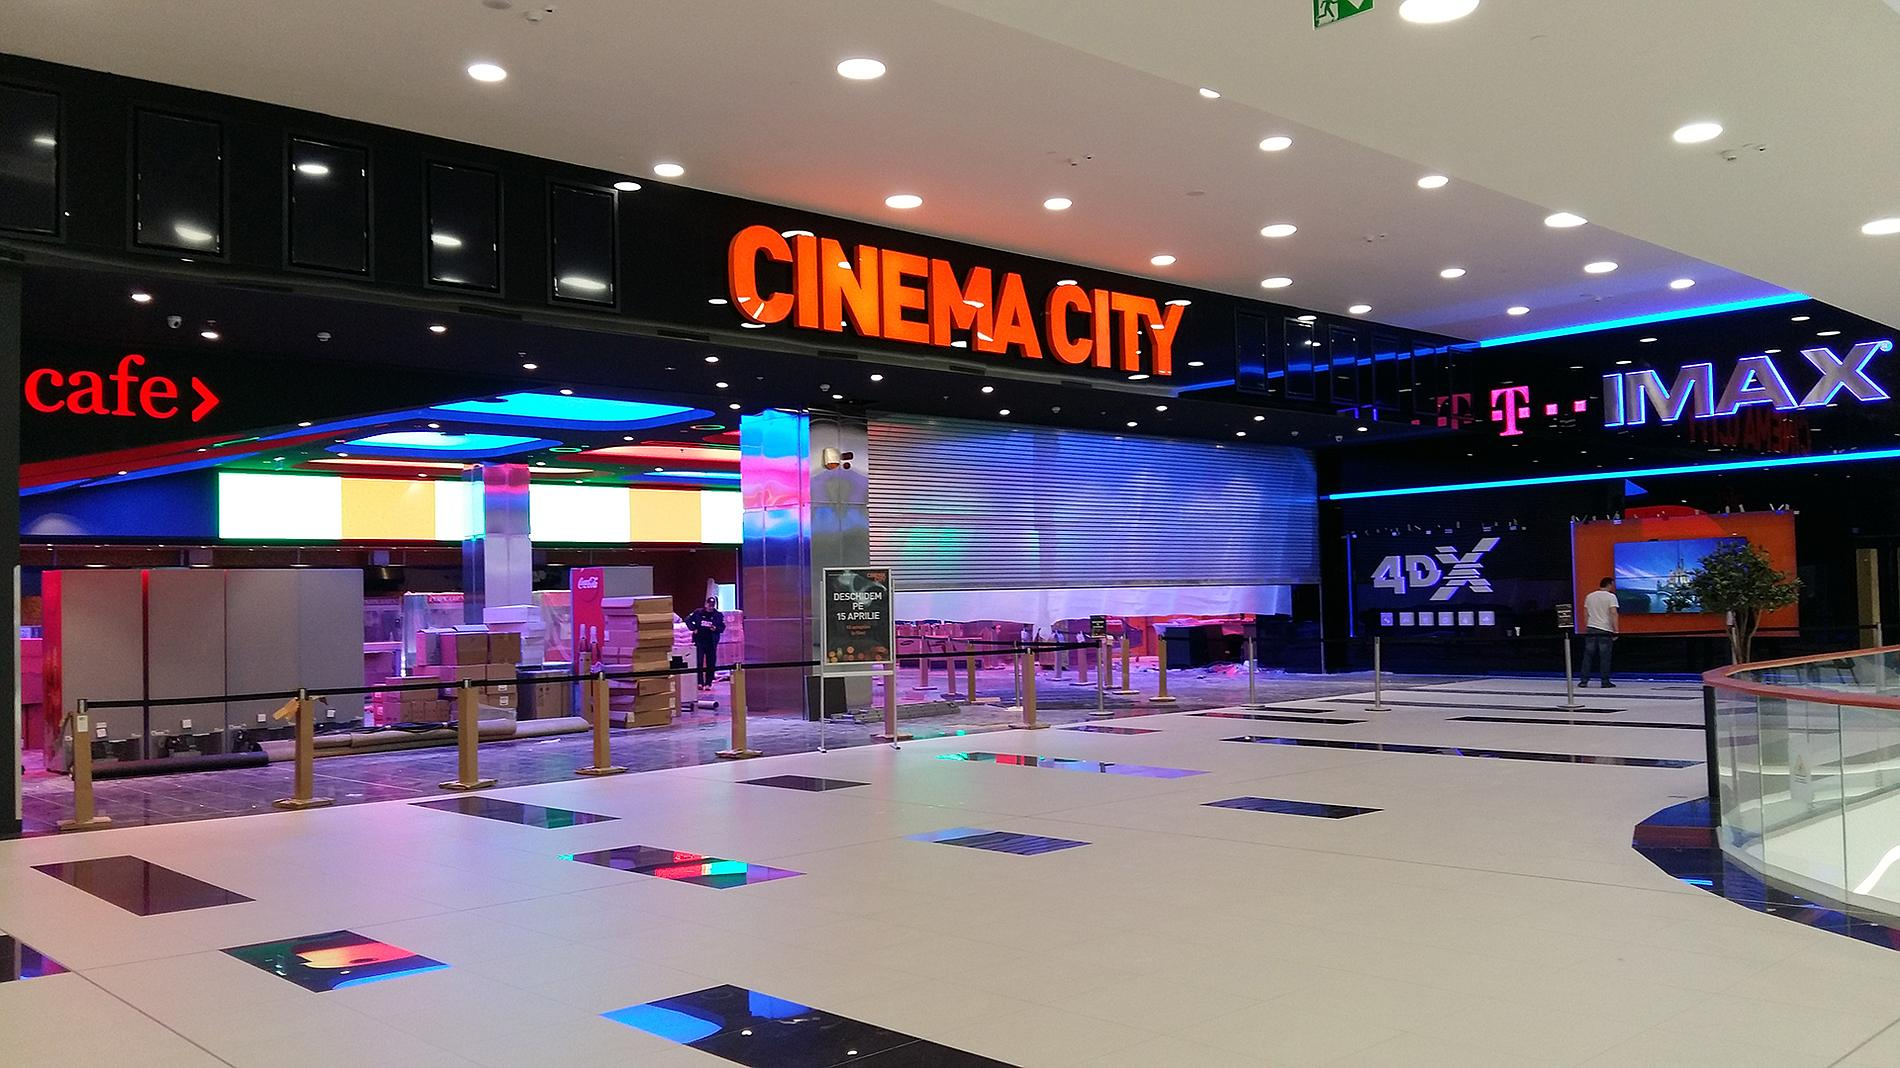 Cinema City interior signage and letters